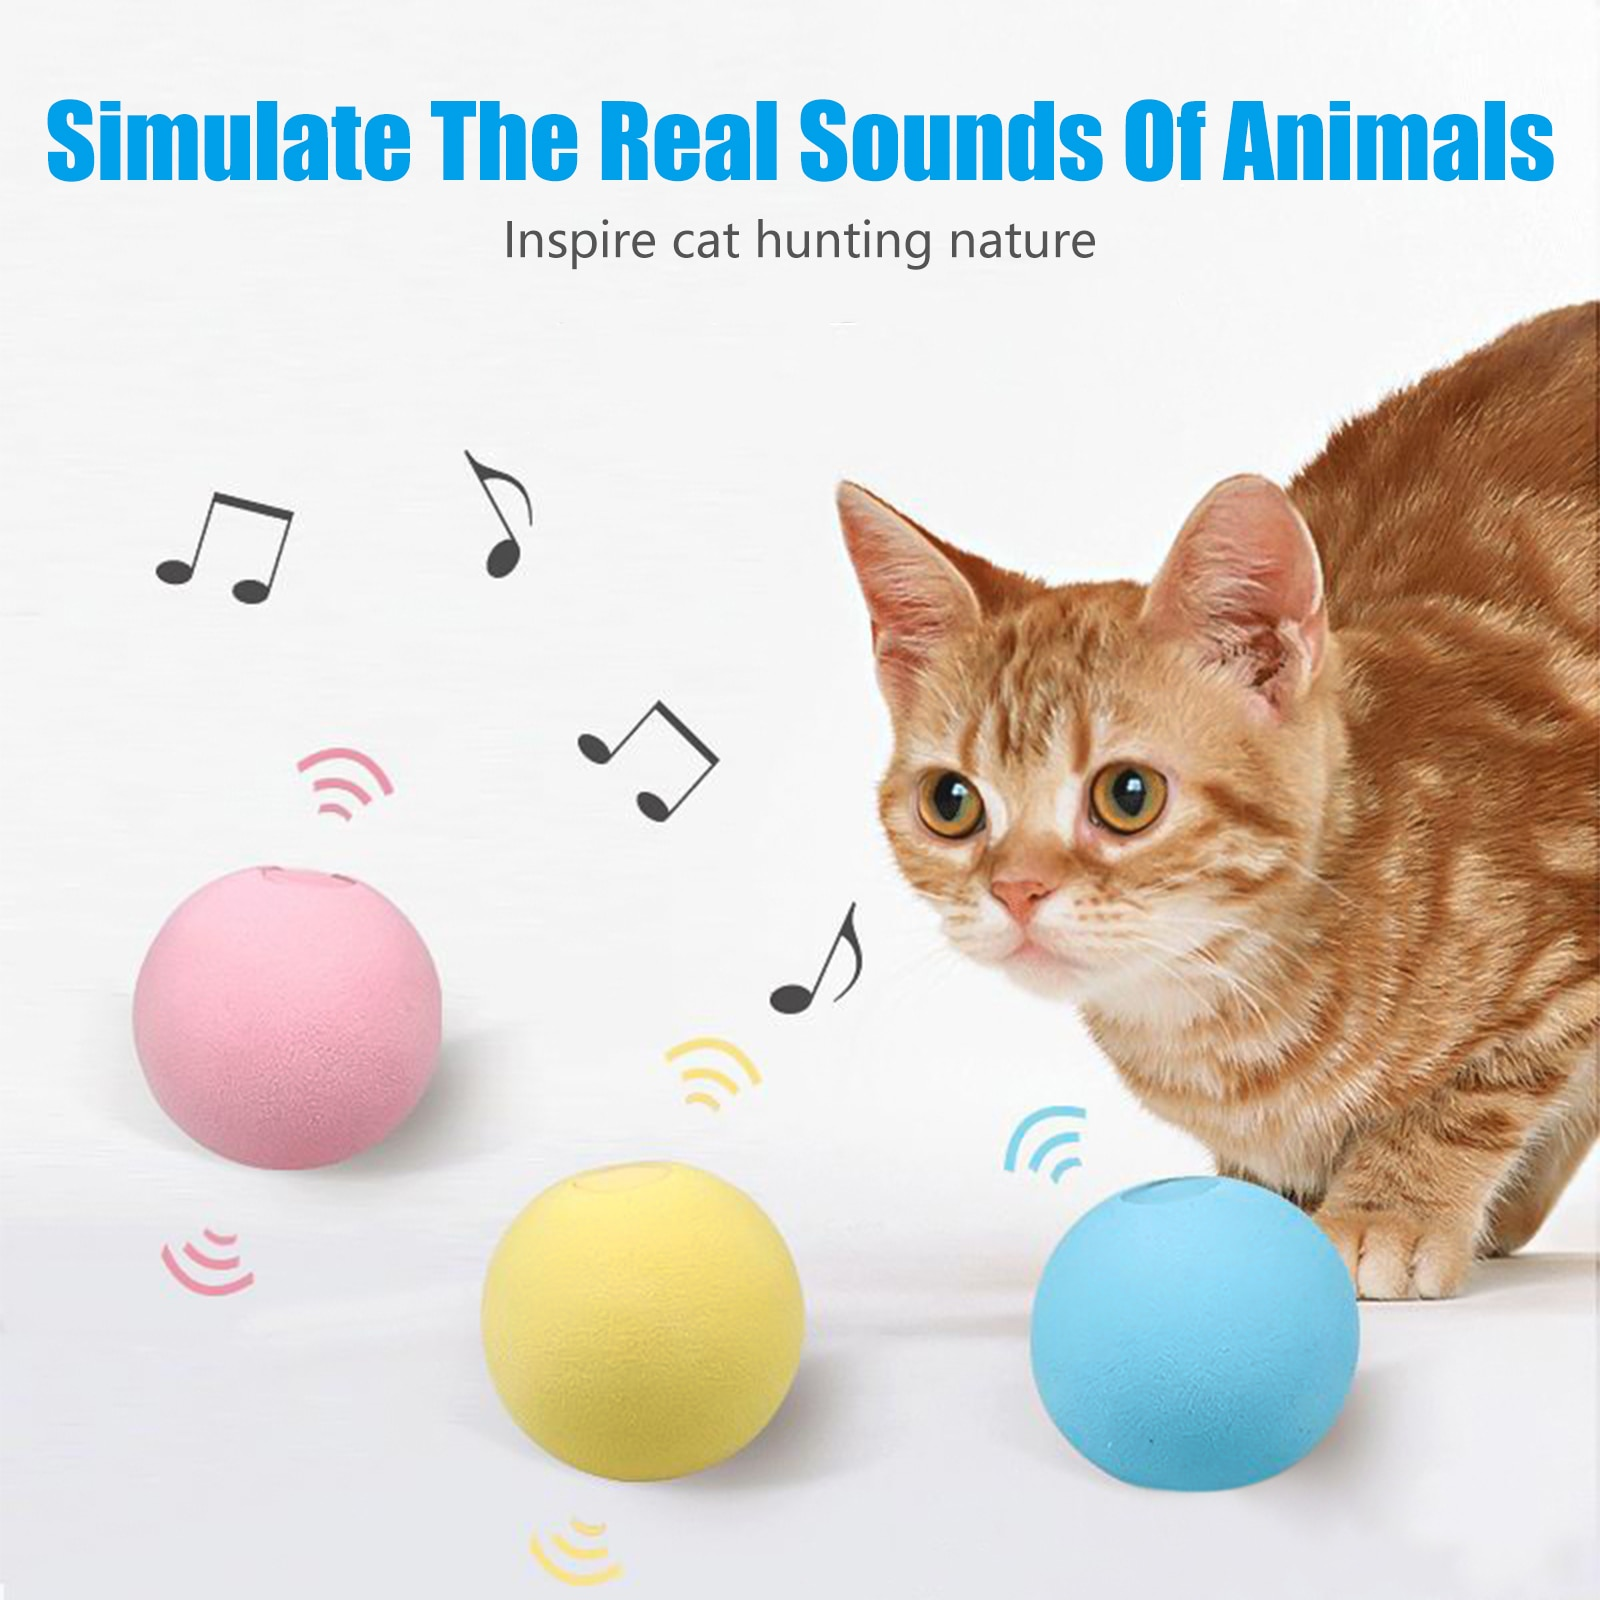 Pet Cat Toy Rolling Gravity Sound Ball 360 Degree Self Rotating Ball Pets Playing Toys Motion Activated Pet Interactive Toy automatic 360 degree rotating laser light cat interactive toy